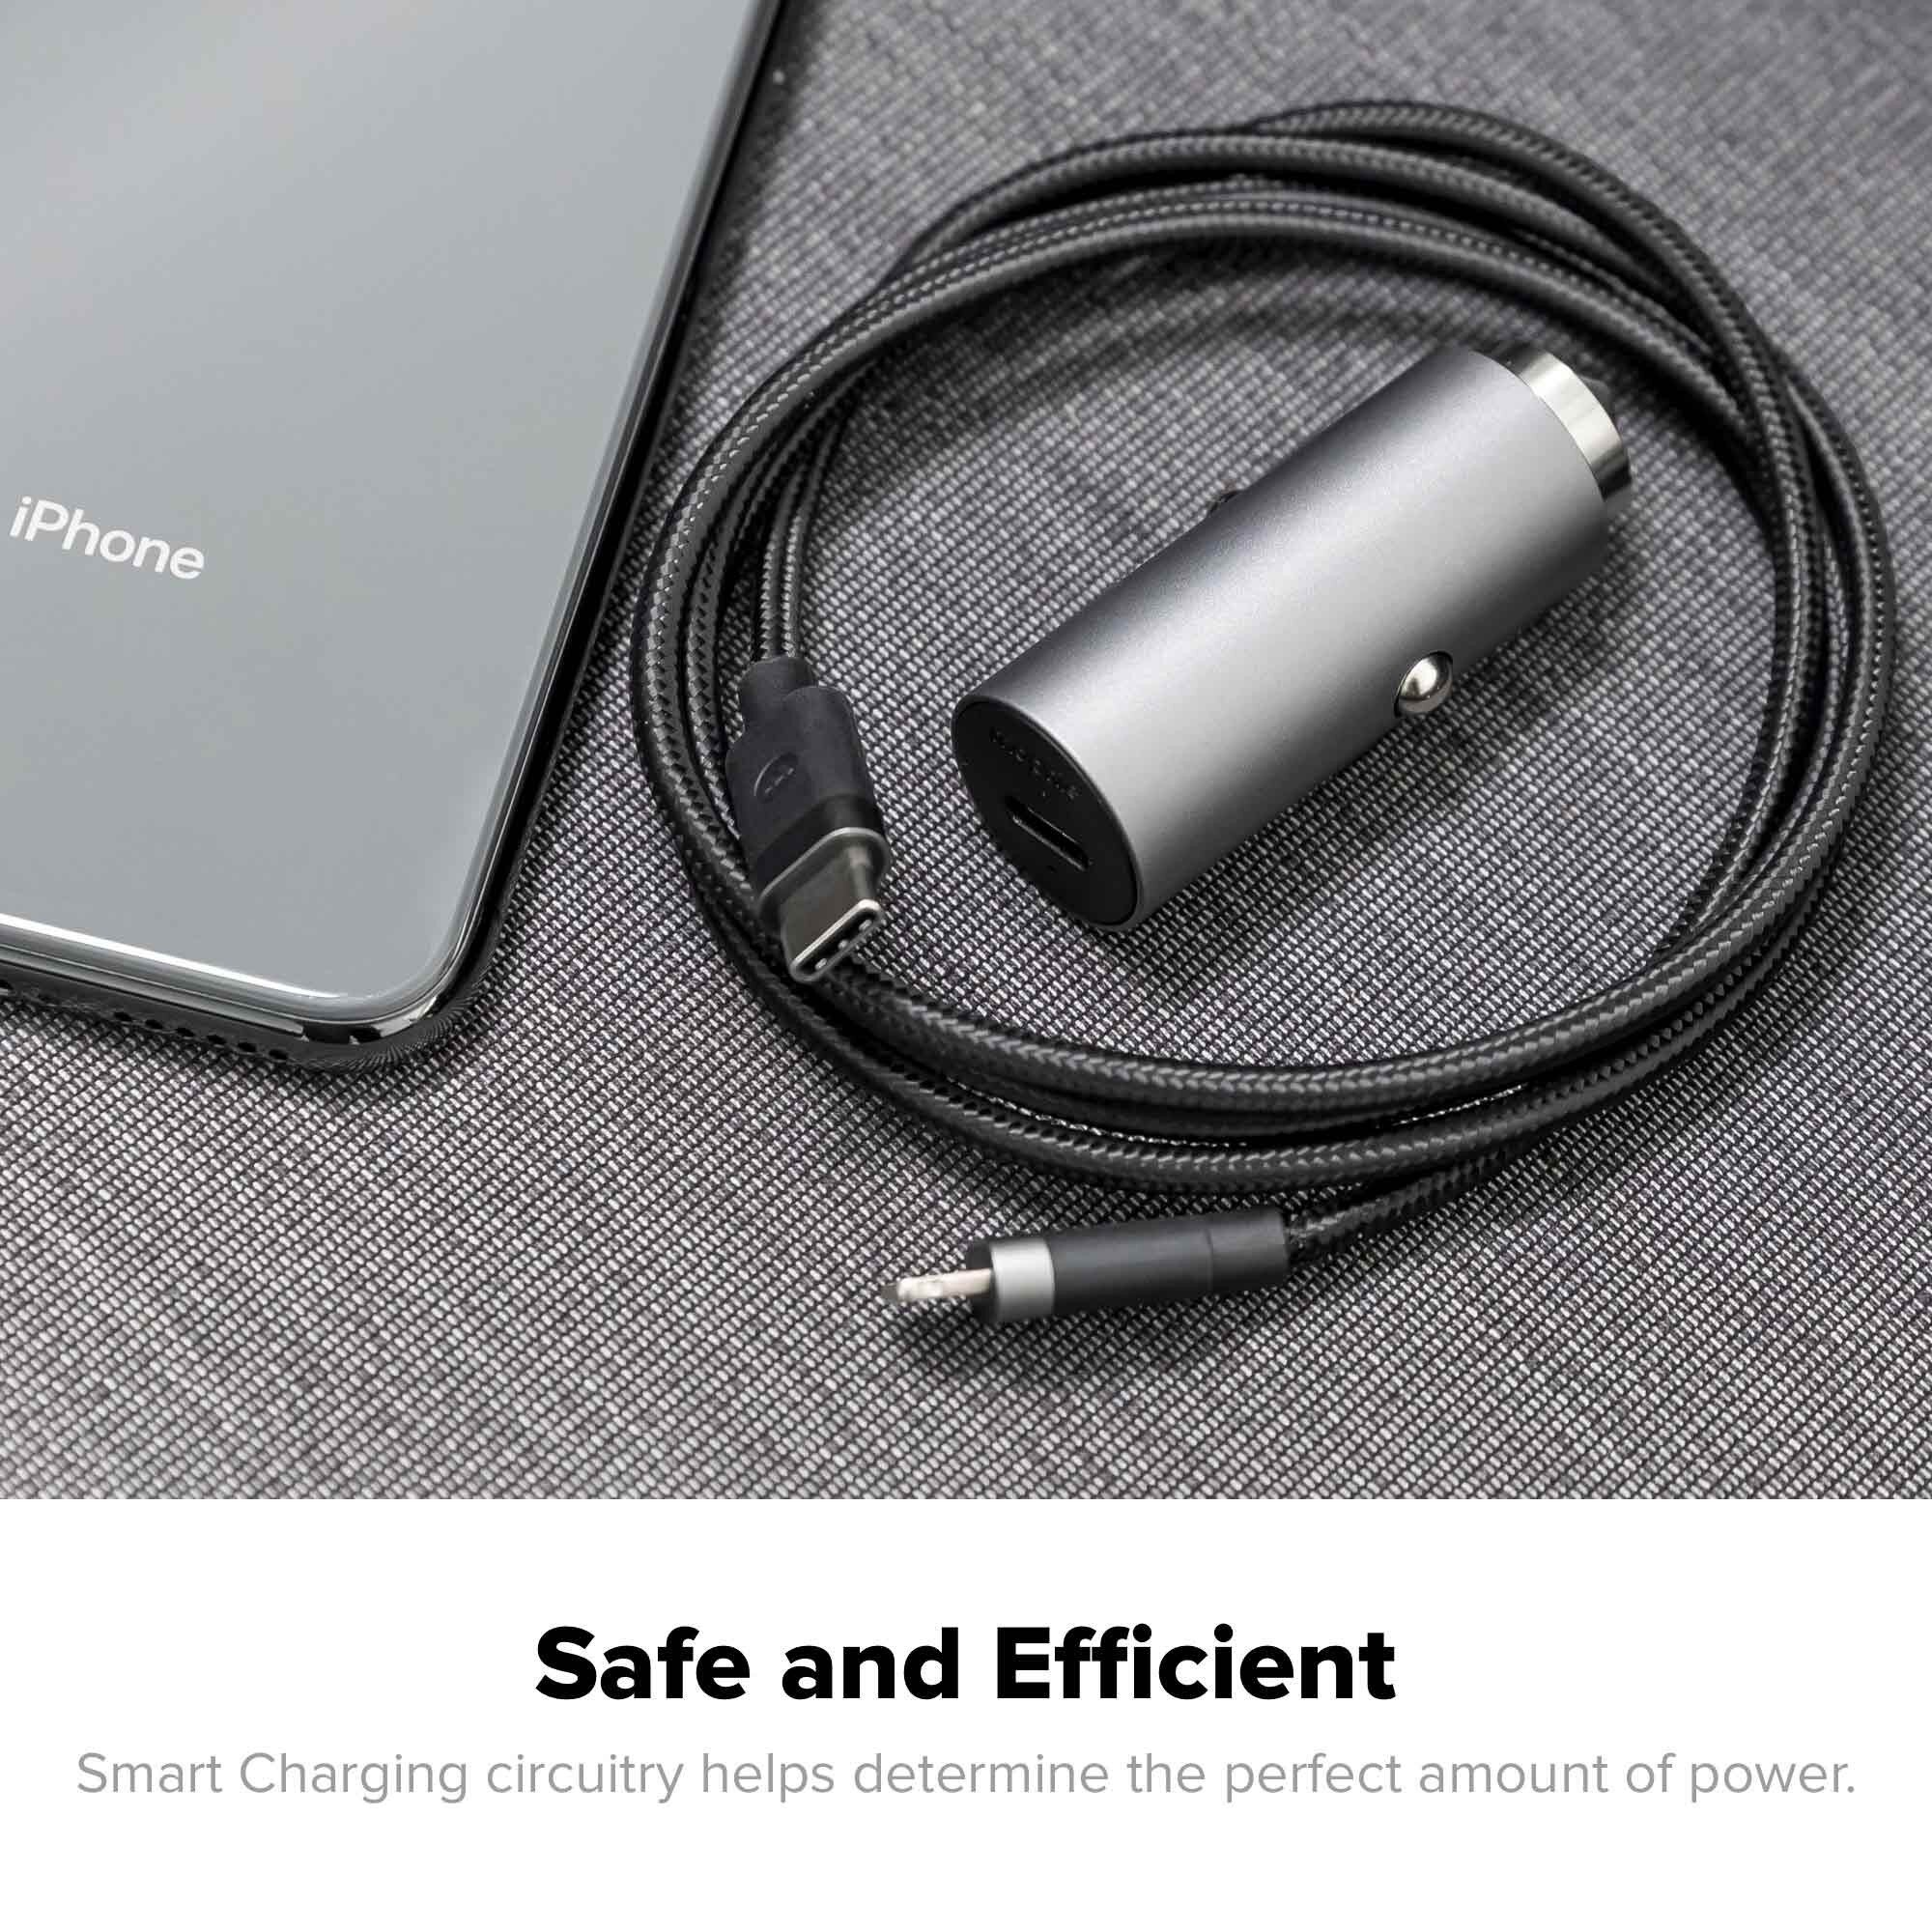 Buy Mophie Usb C Car Charger Online Worldwide Tejar Com Shop online for usb car chargers / dc auto adapters for mobile phones and more at pbtech.co.nz. mophie usb c car charger